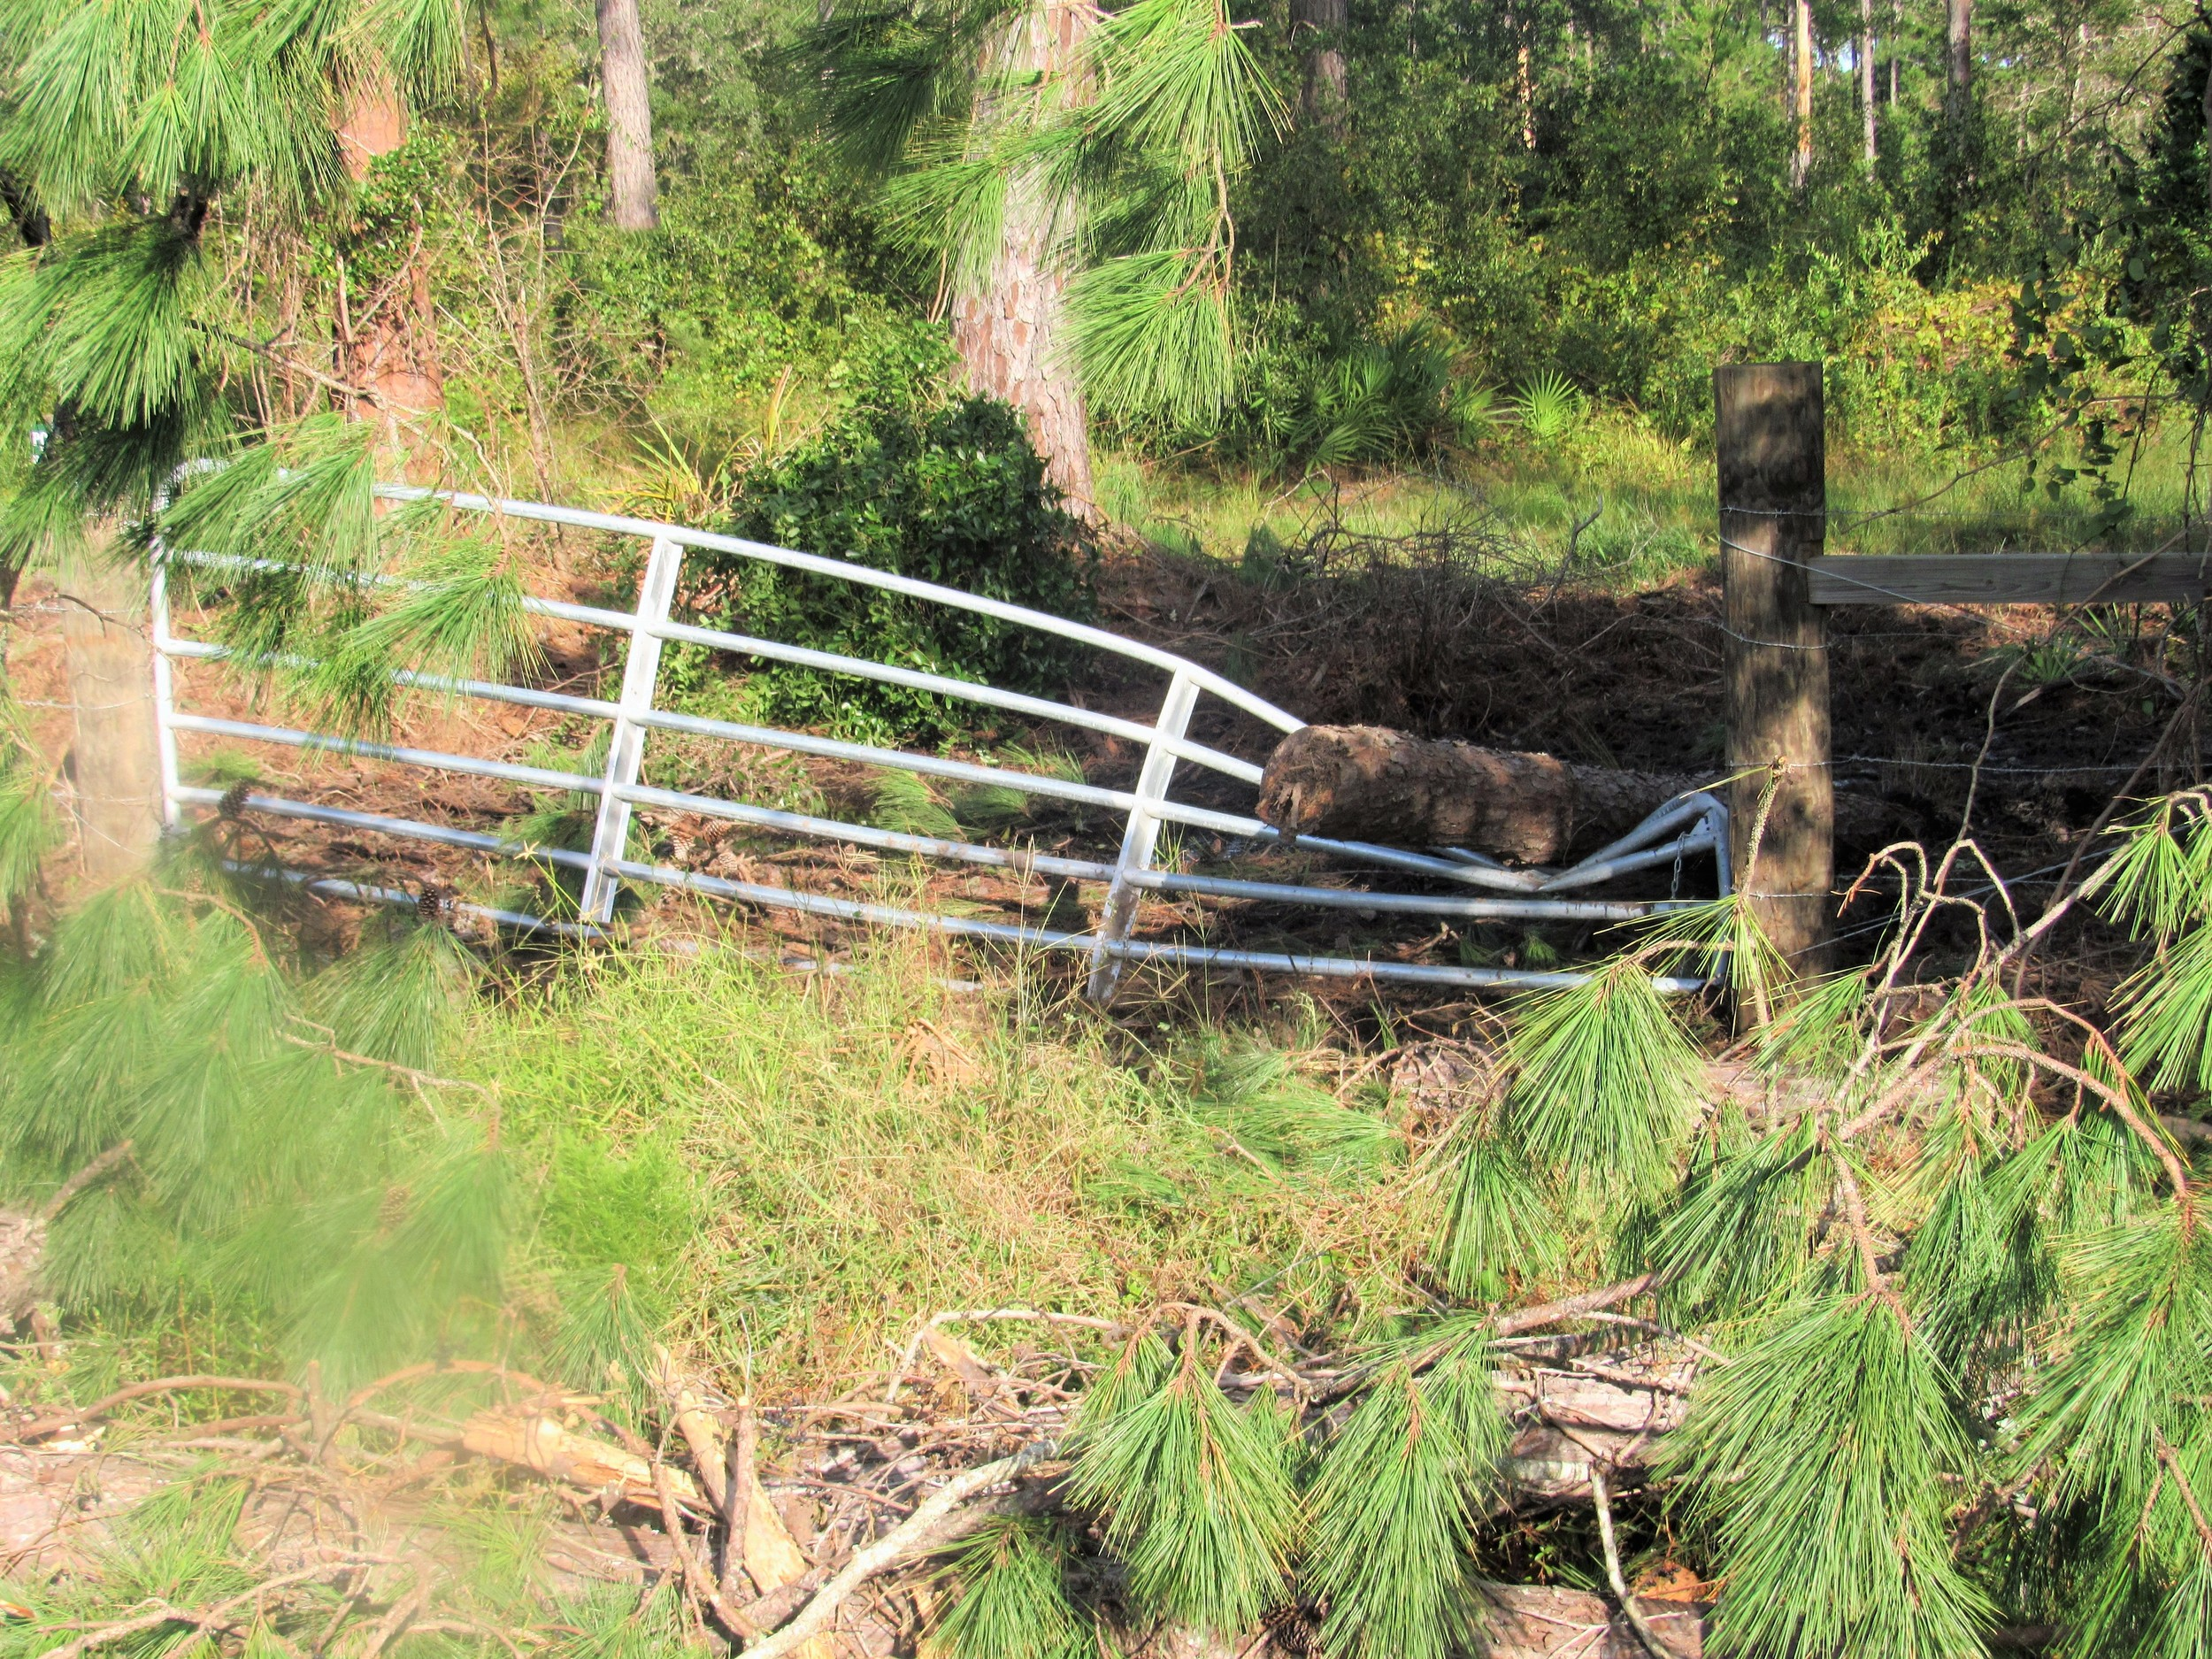 A Mickler Road fence is left damaged by the trunk of a downed tree.